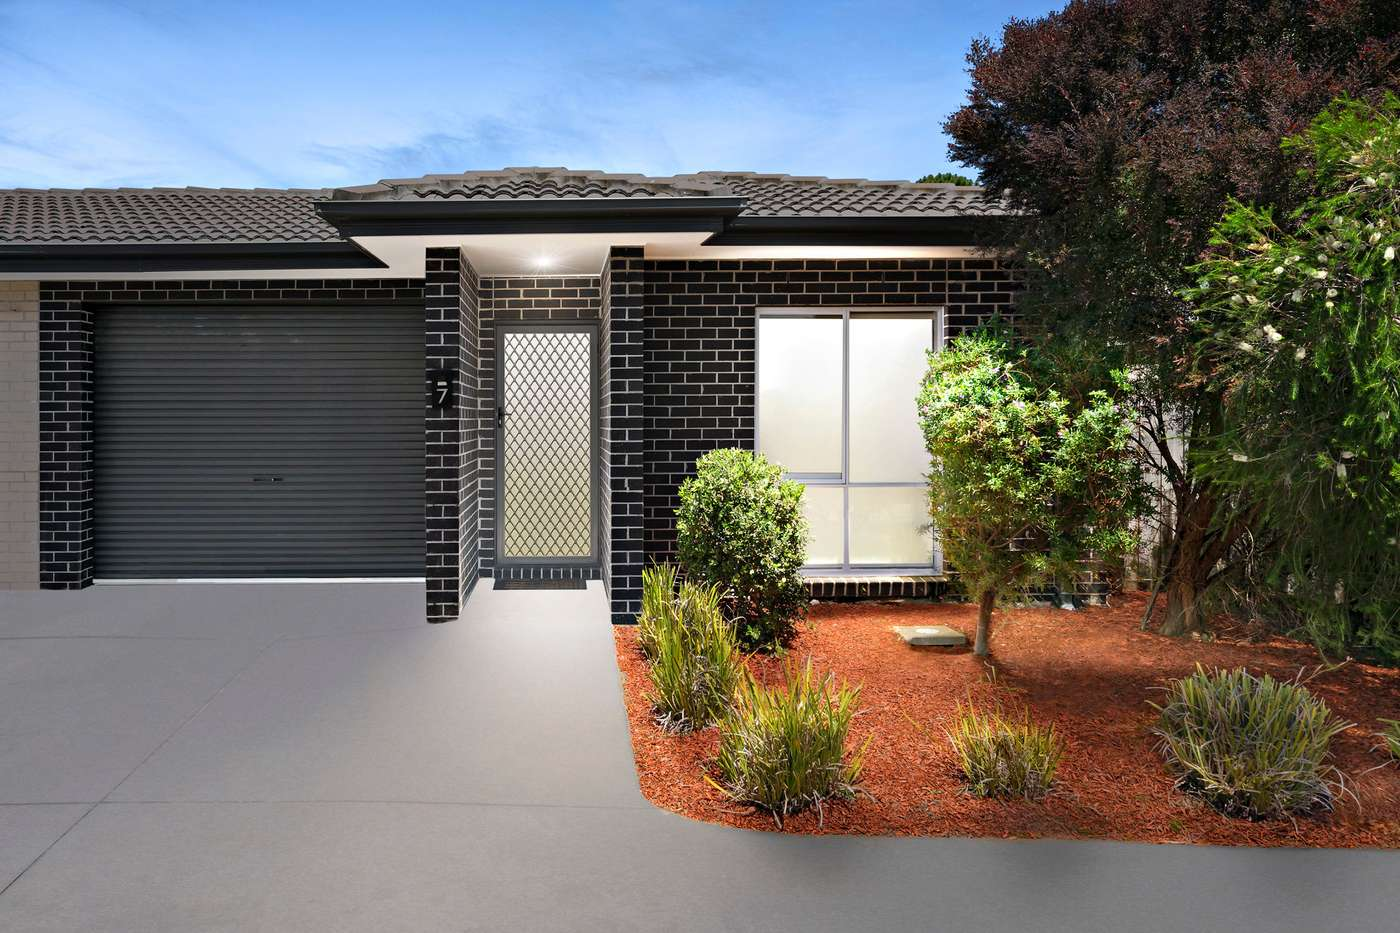 Main view of Homely unit listing, 7/67 Brumbys Road, Carrum Downs, VIC 3201